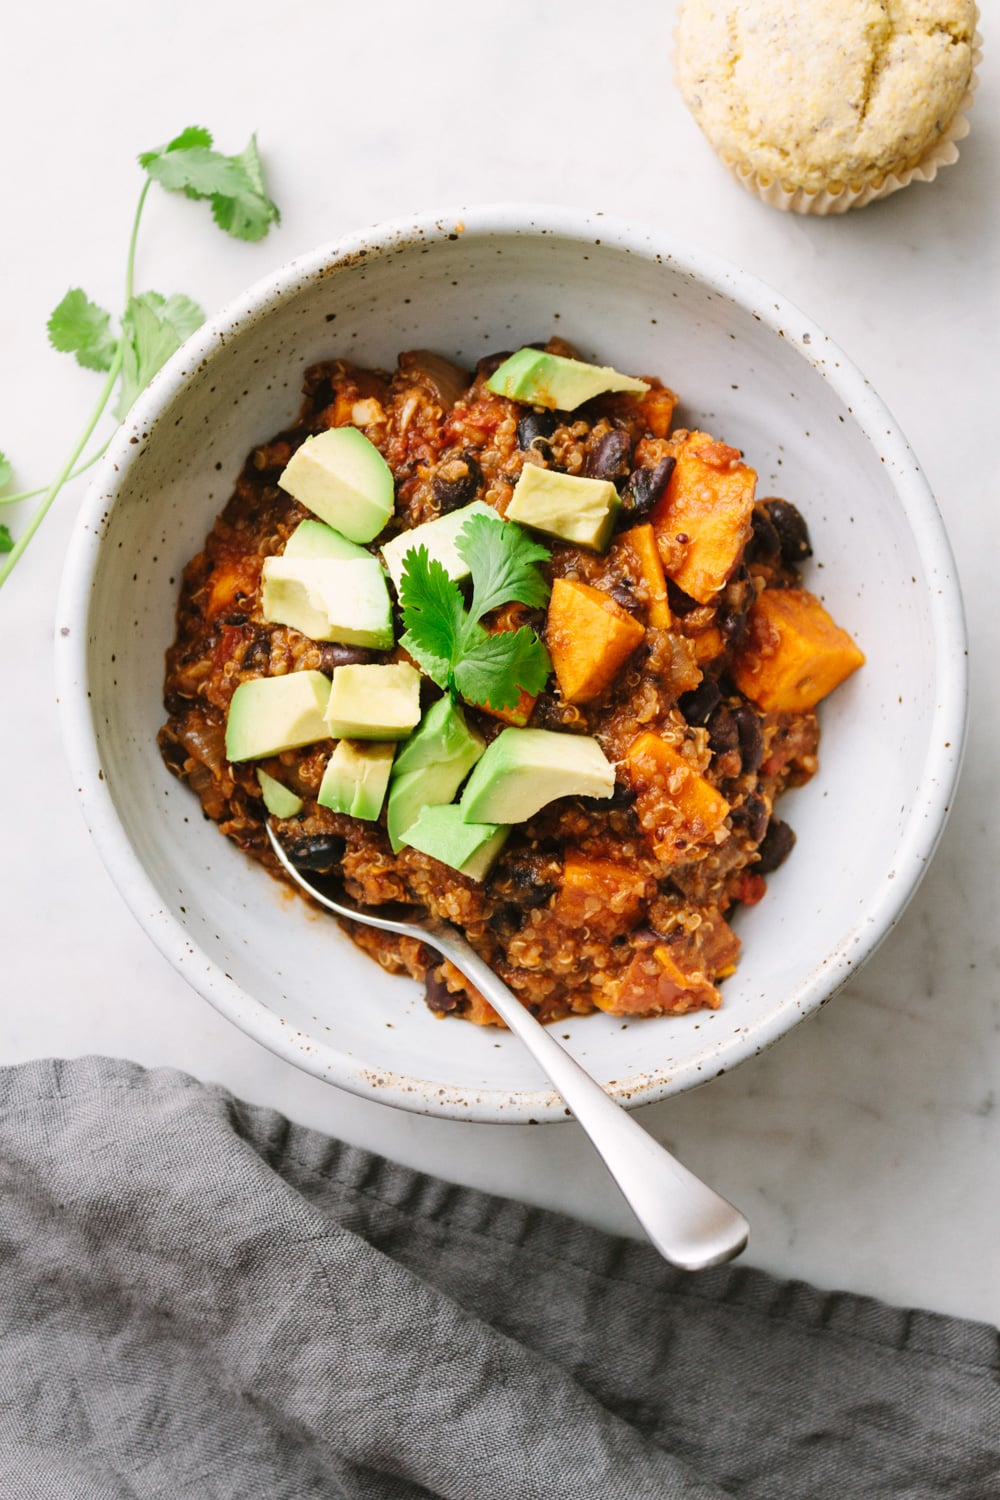 top down view of a bowl with a serving of vegan sweet potato and quinoa chili.